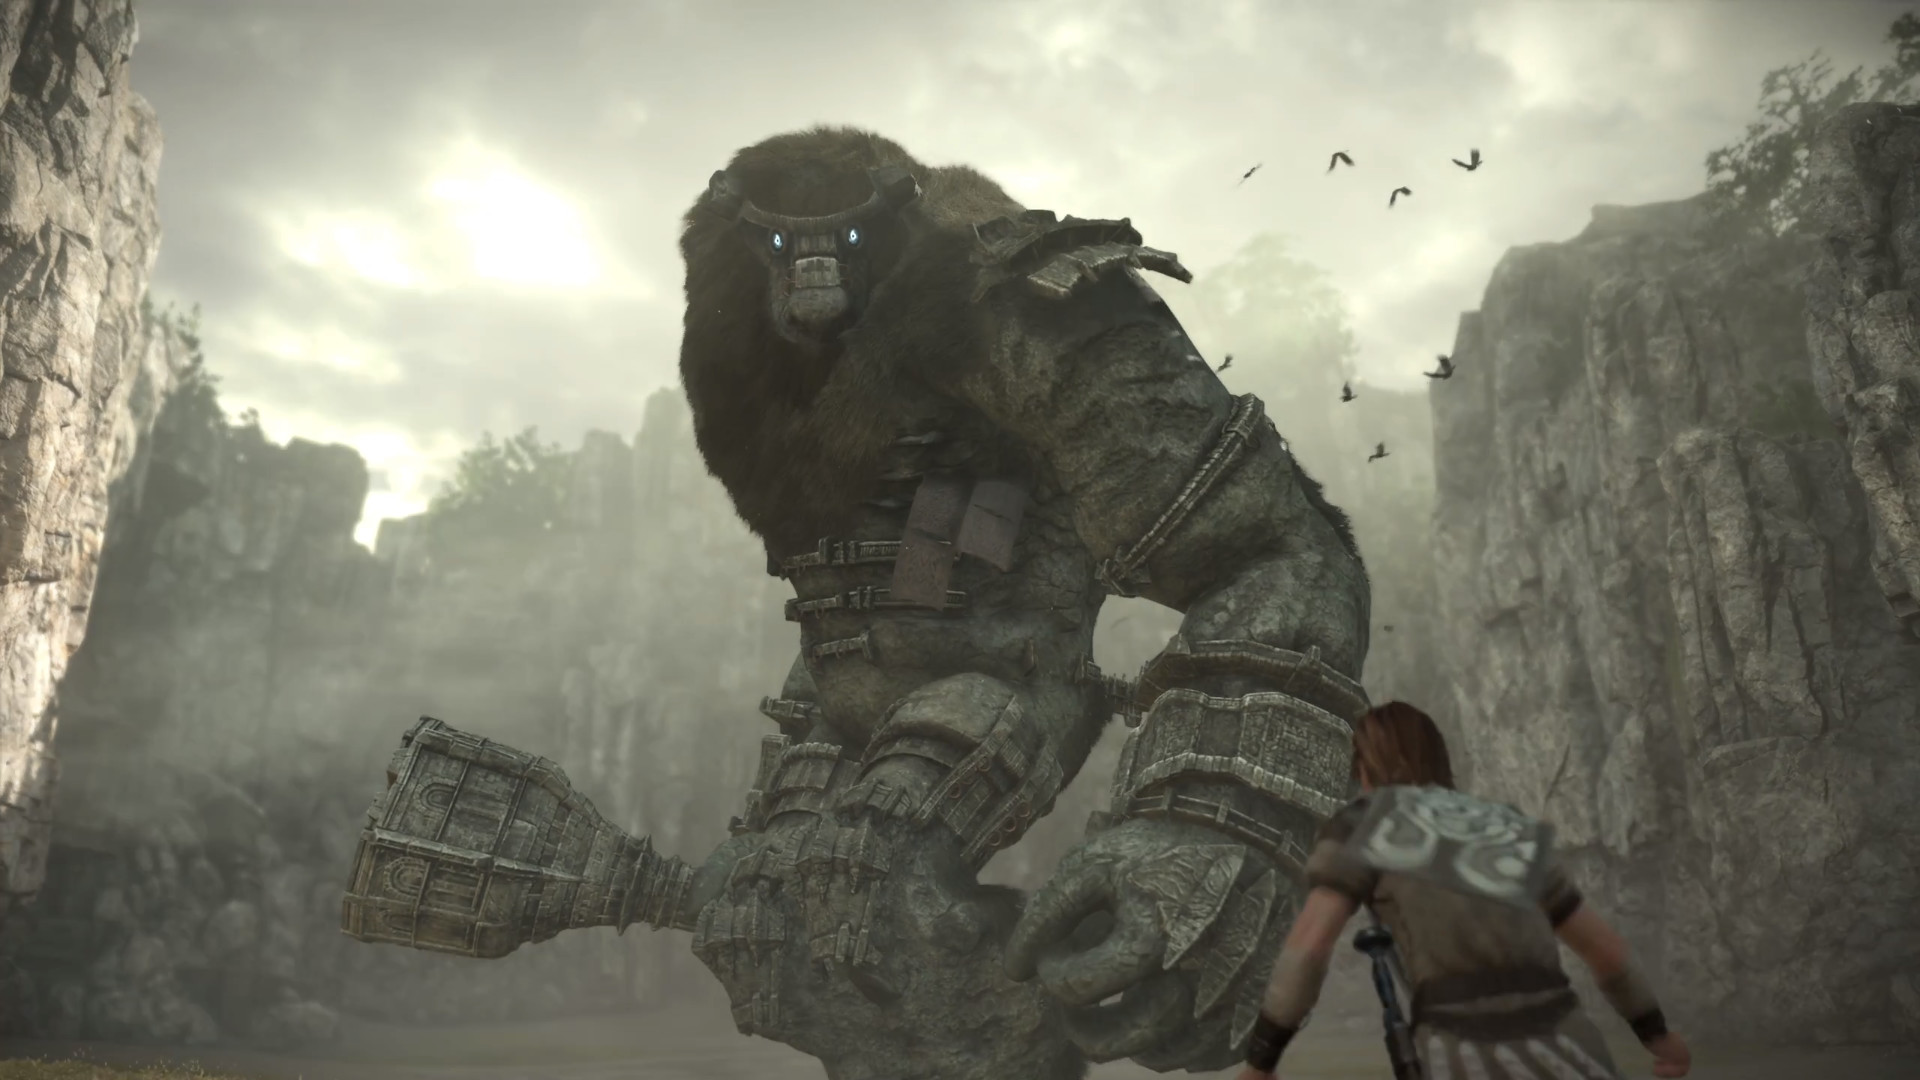 Shadow of the Colossus PS4 is out in 2018. The game is being developed by  Bluepoint Studios while it will be published by Sony Interactive  Entertainment.